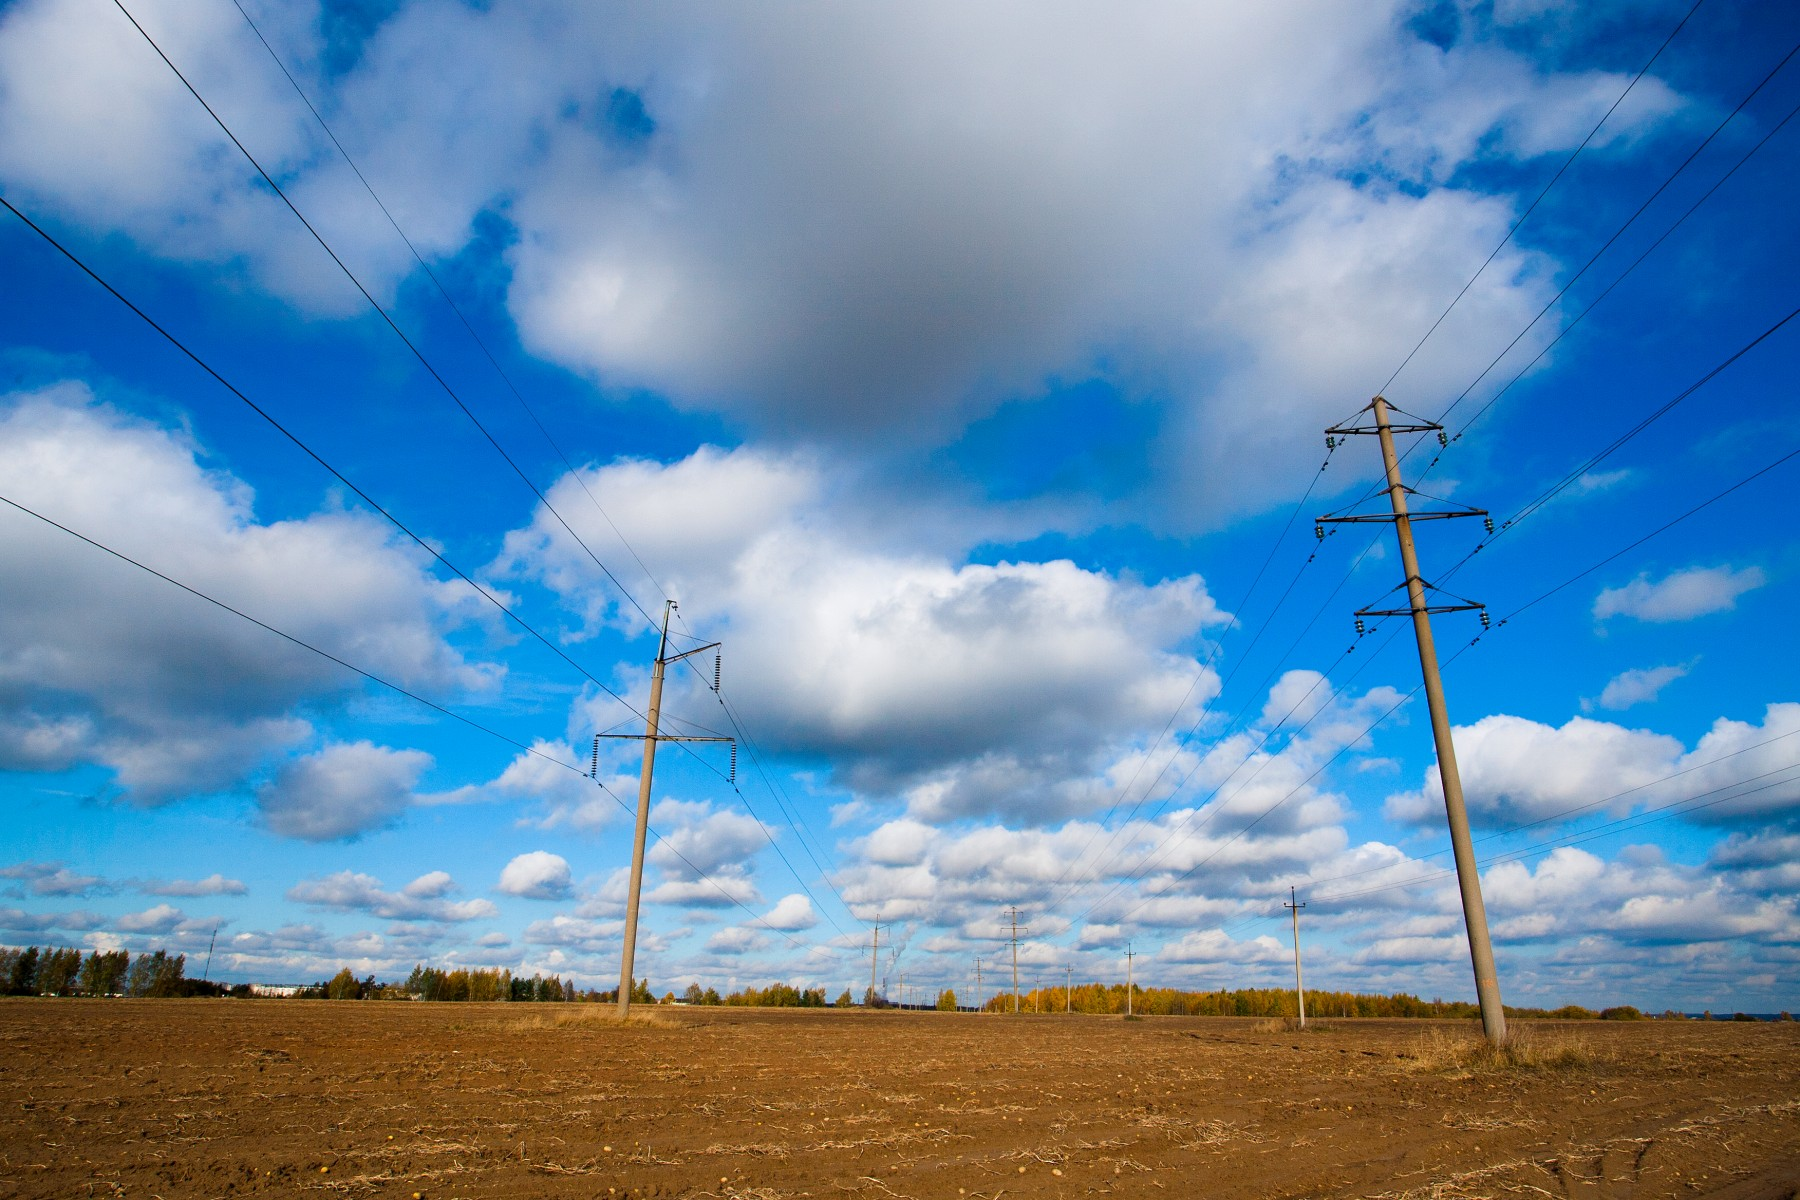 downed power line - Tim Kyle